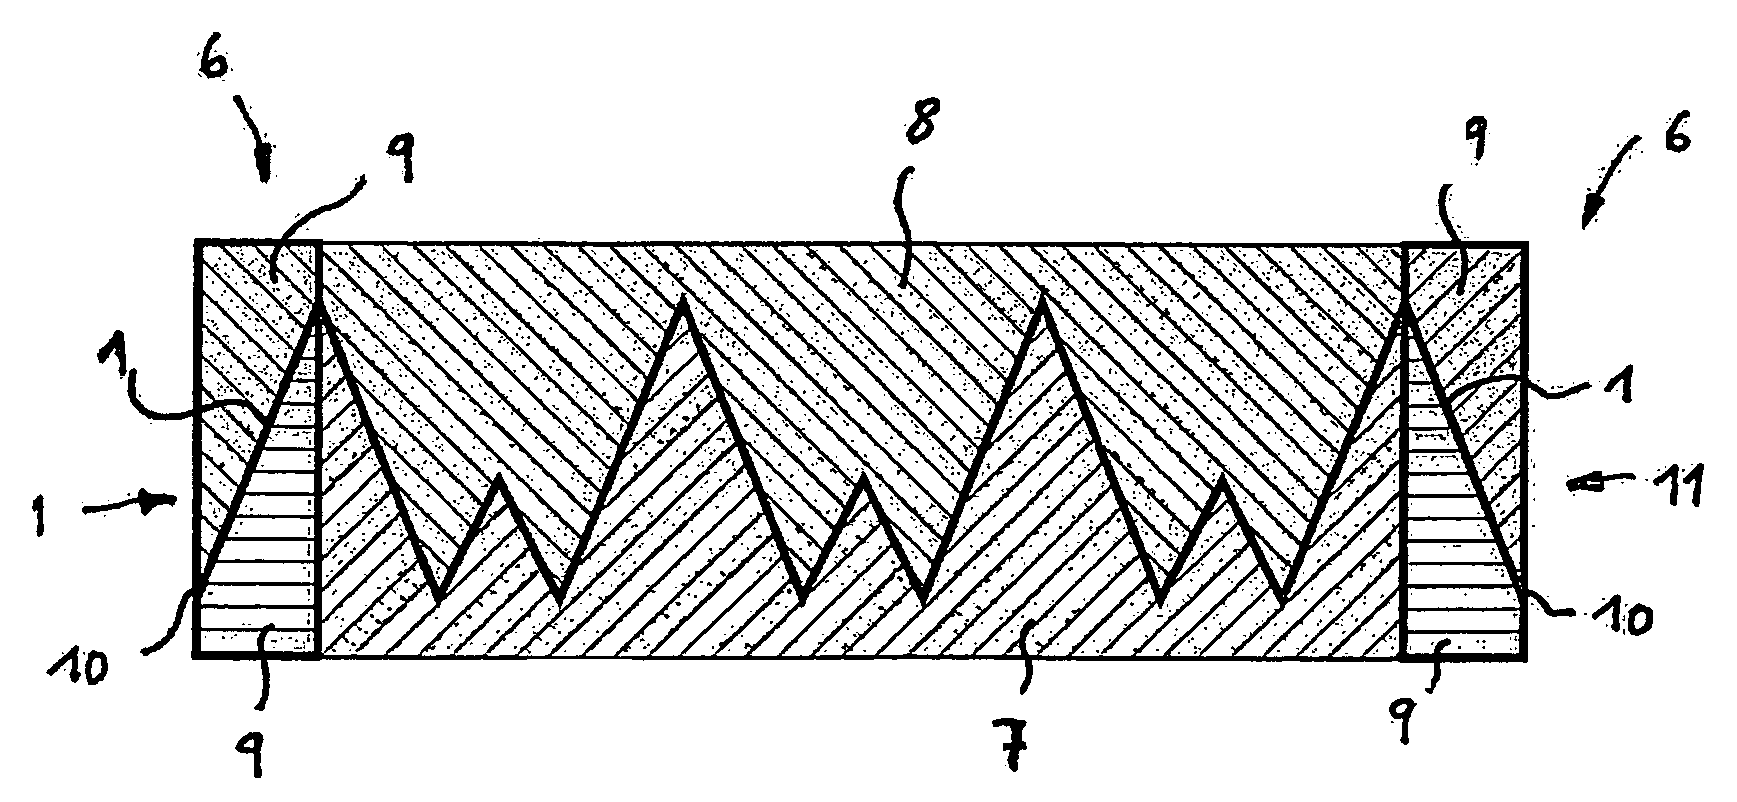 composite cell diagram 3 phase air compressor wiring patent us7658810 method for sealing edges of a core